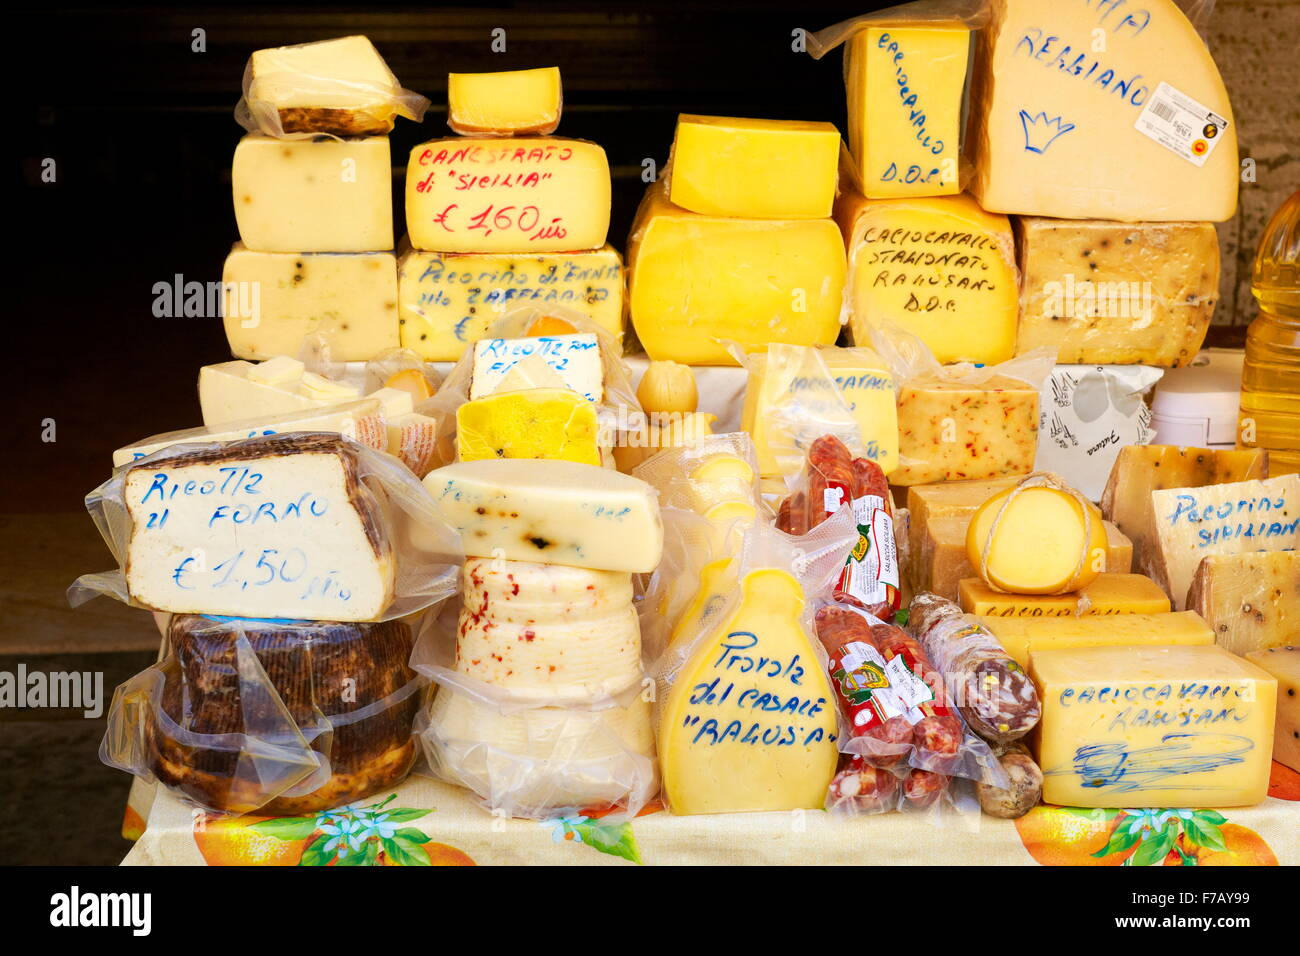 Sicilian cheese - many types of traditional sicilian cheeses, food market of Ortigia, Syracuse, Sicily, Italy - Stock Image